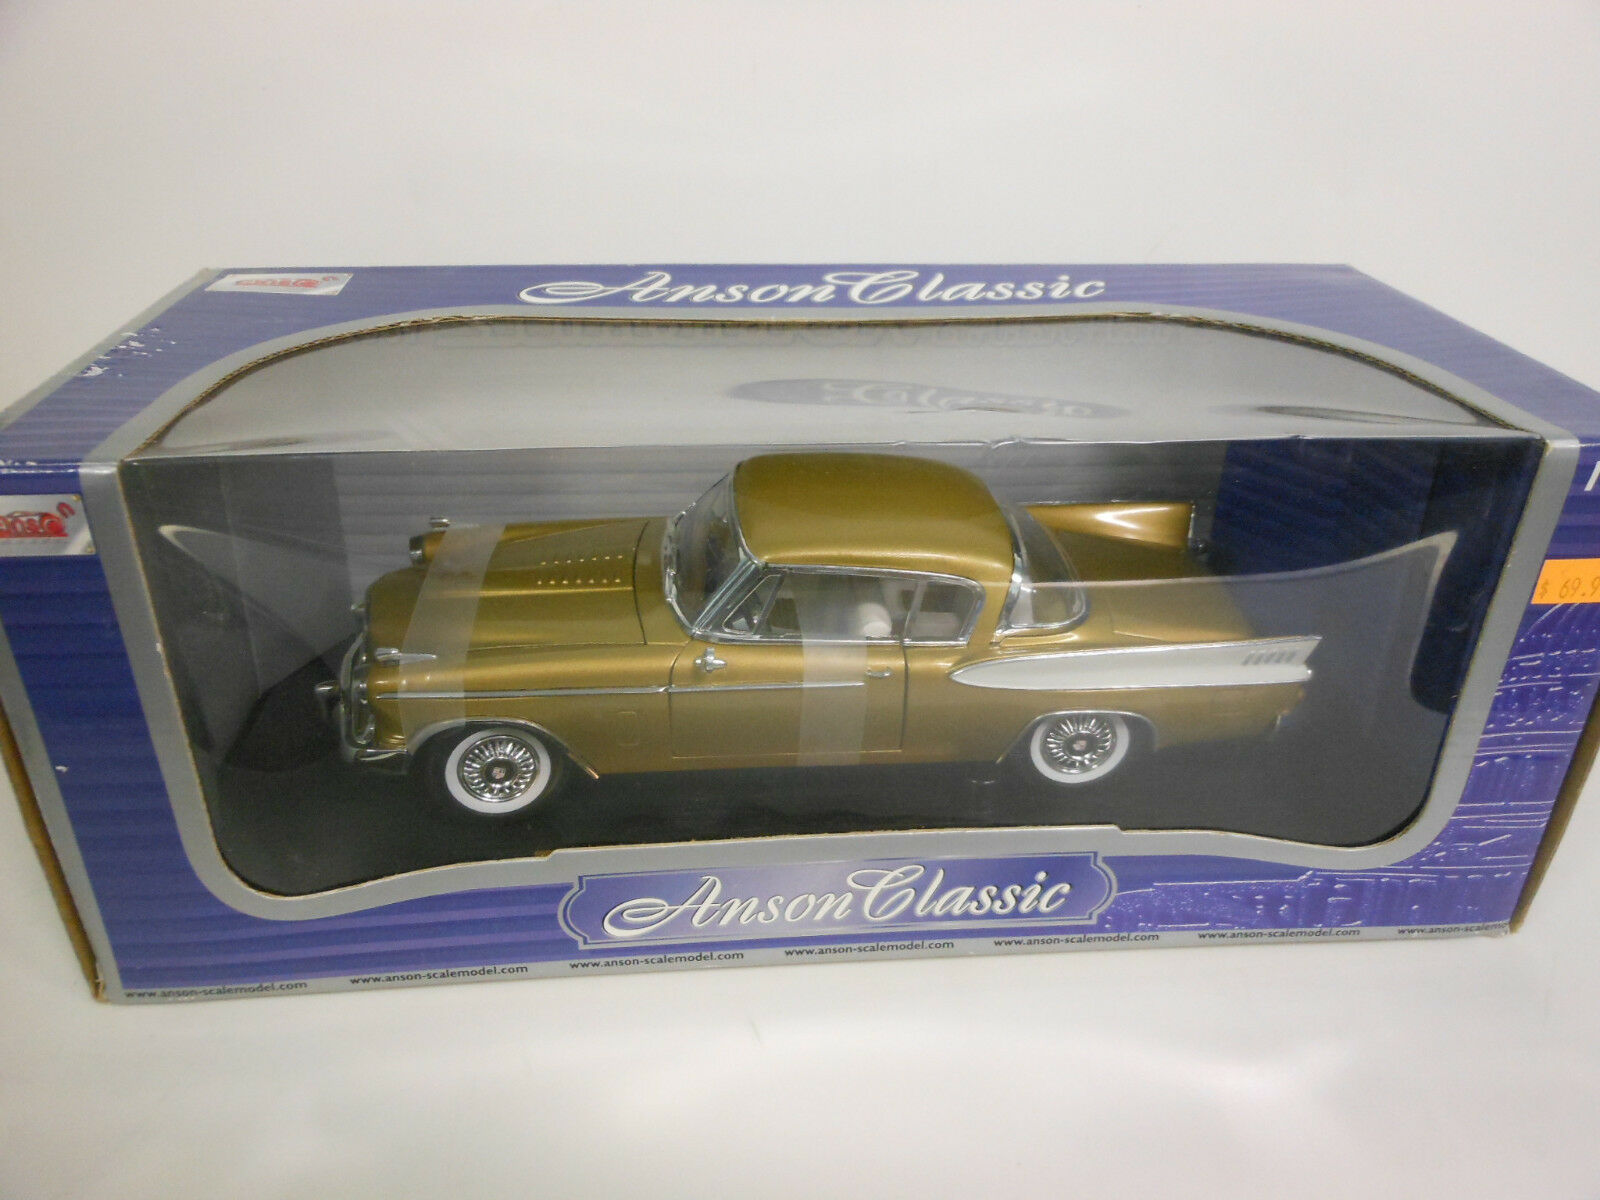 Anson 1957 1957 1957 Studebaker golden Hawk (Die-cast - 1 18 Scale) 8e76c4